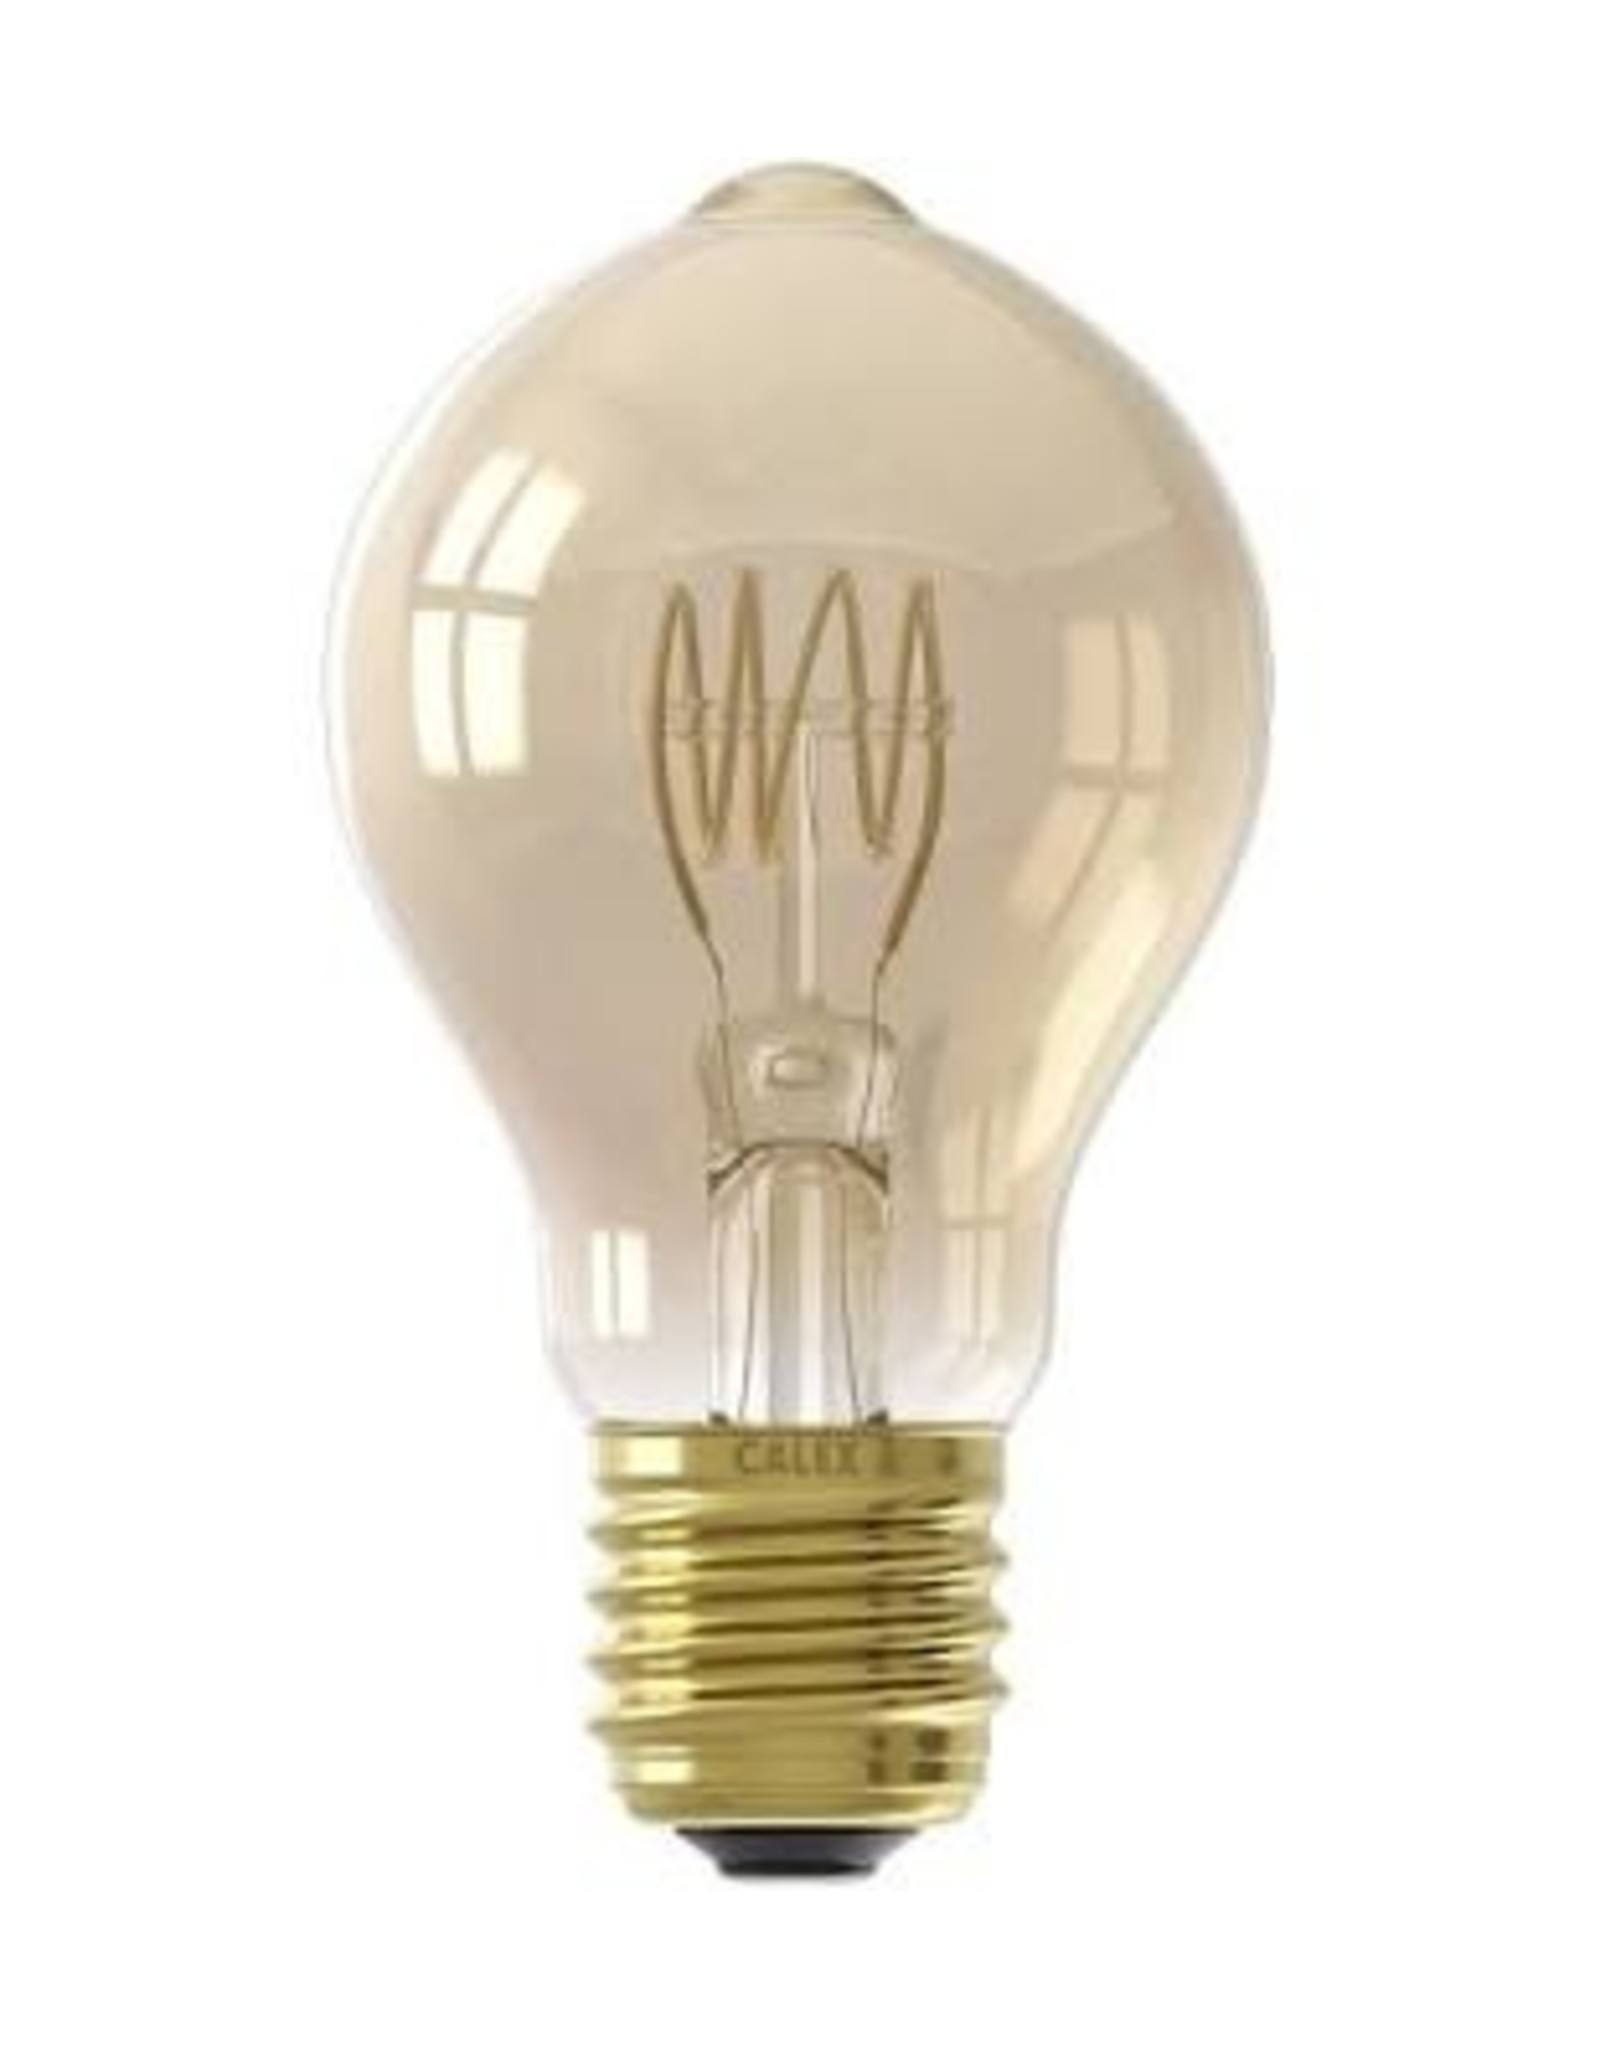 Calex LED Full Glass Flex Filament GLS-lamp 220-240V 4W 200lm E27 A60DR, Gold 2100K Dimmable, energy label A